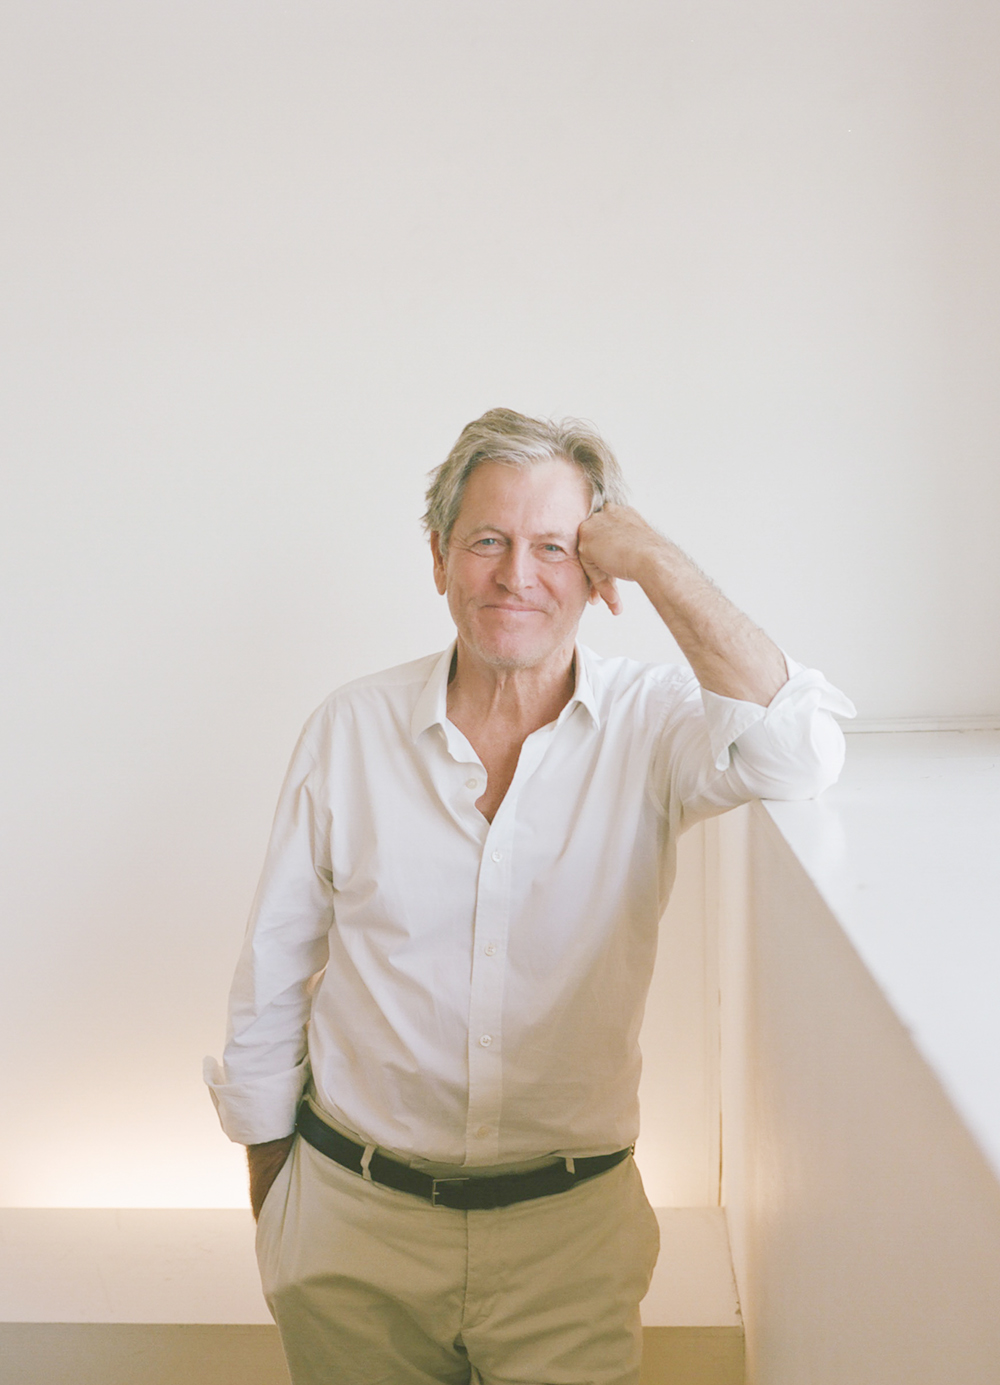 Minimalist Design Blog 4 - JohnPawson (somethingcurated.com)